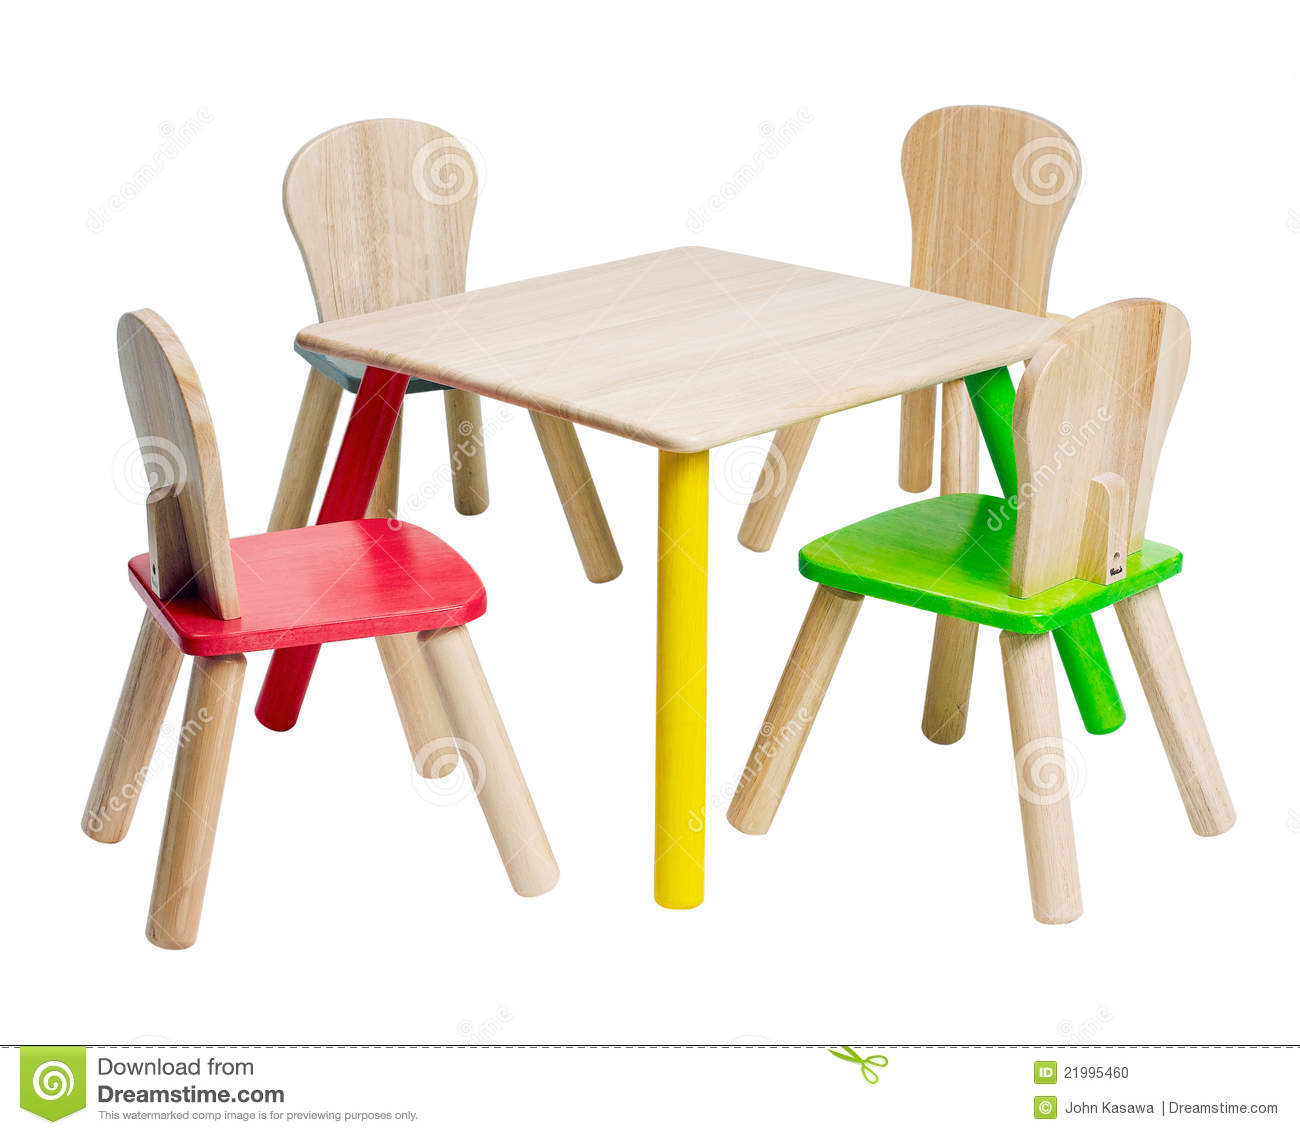 Wooden Table And Chairs Toys For Kid Stock Photo - Image: 21995460